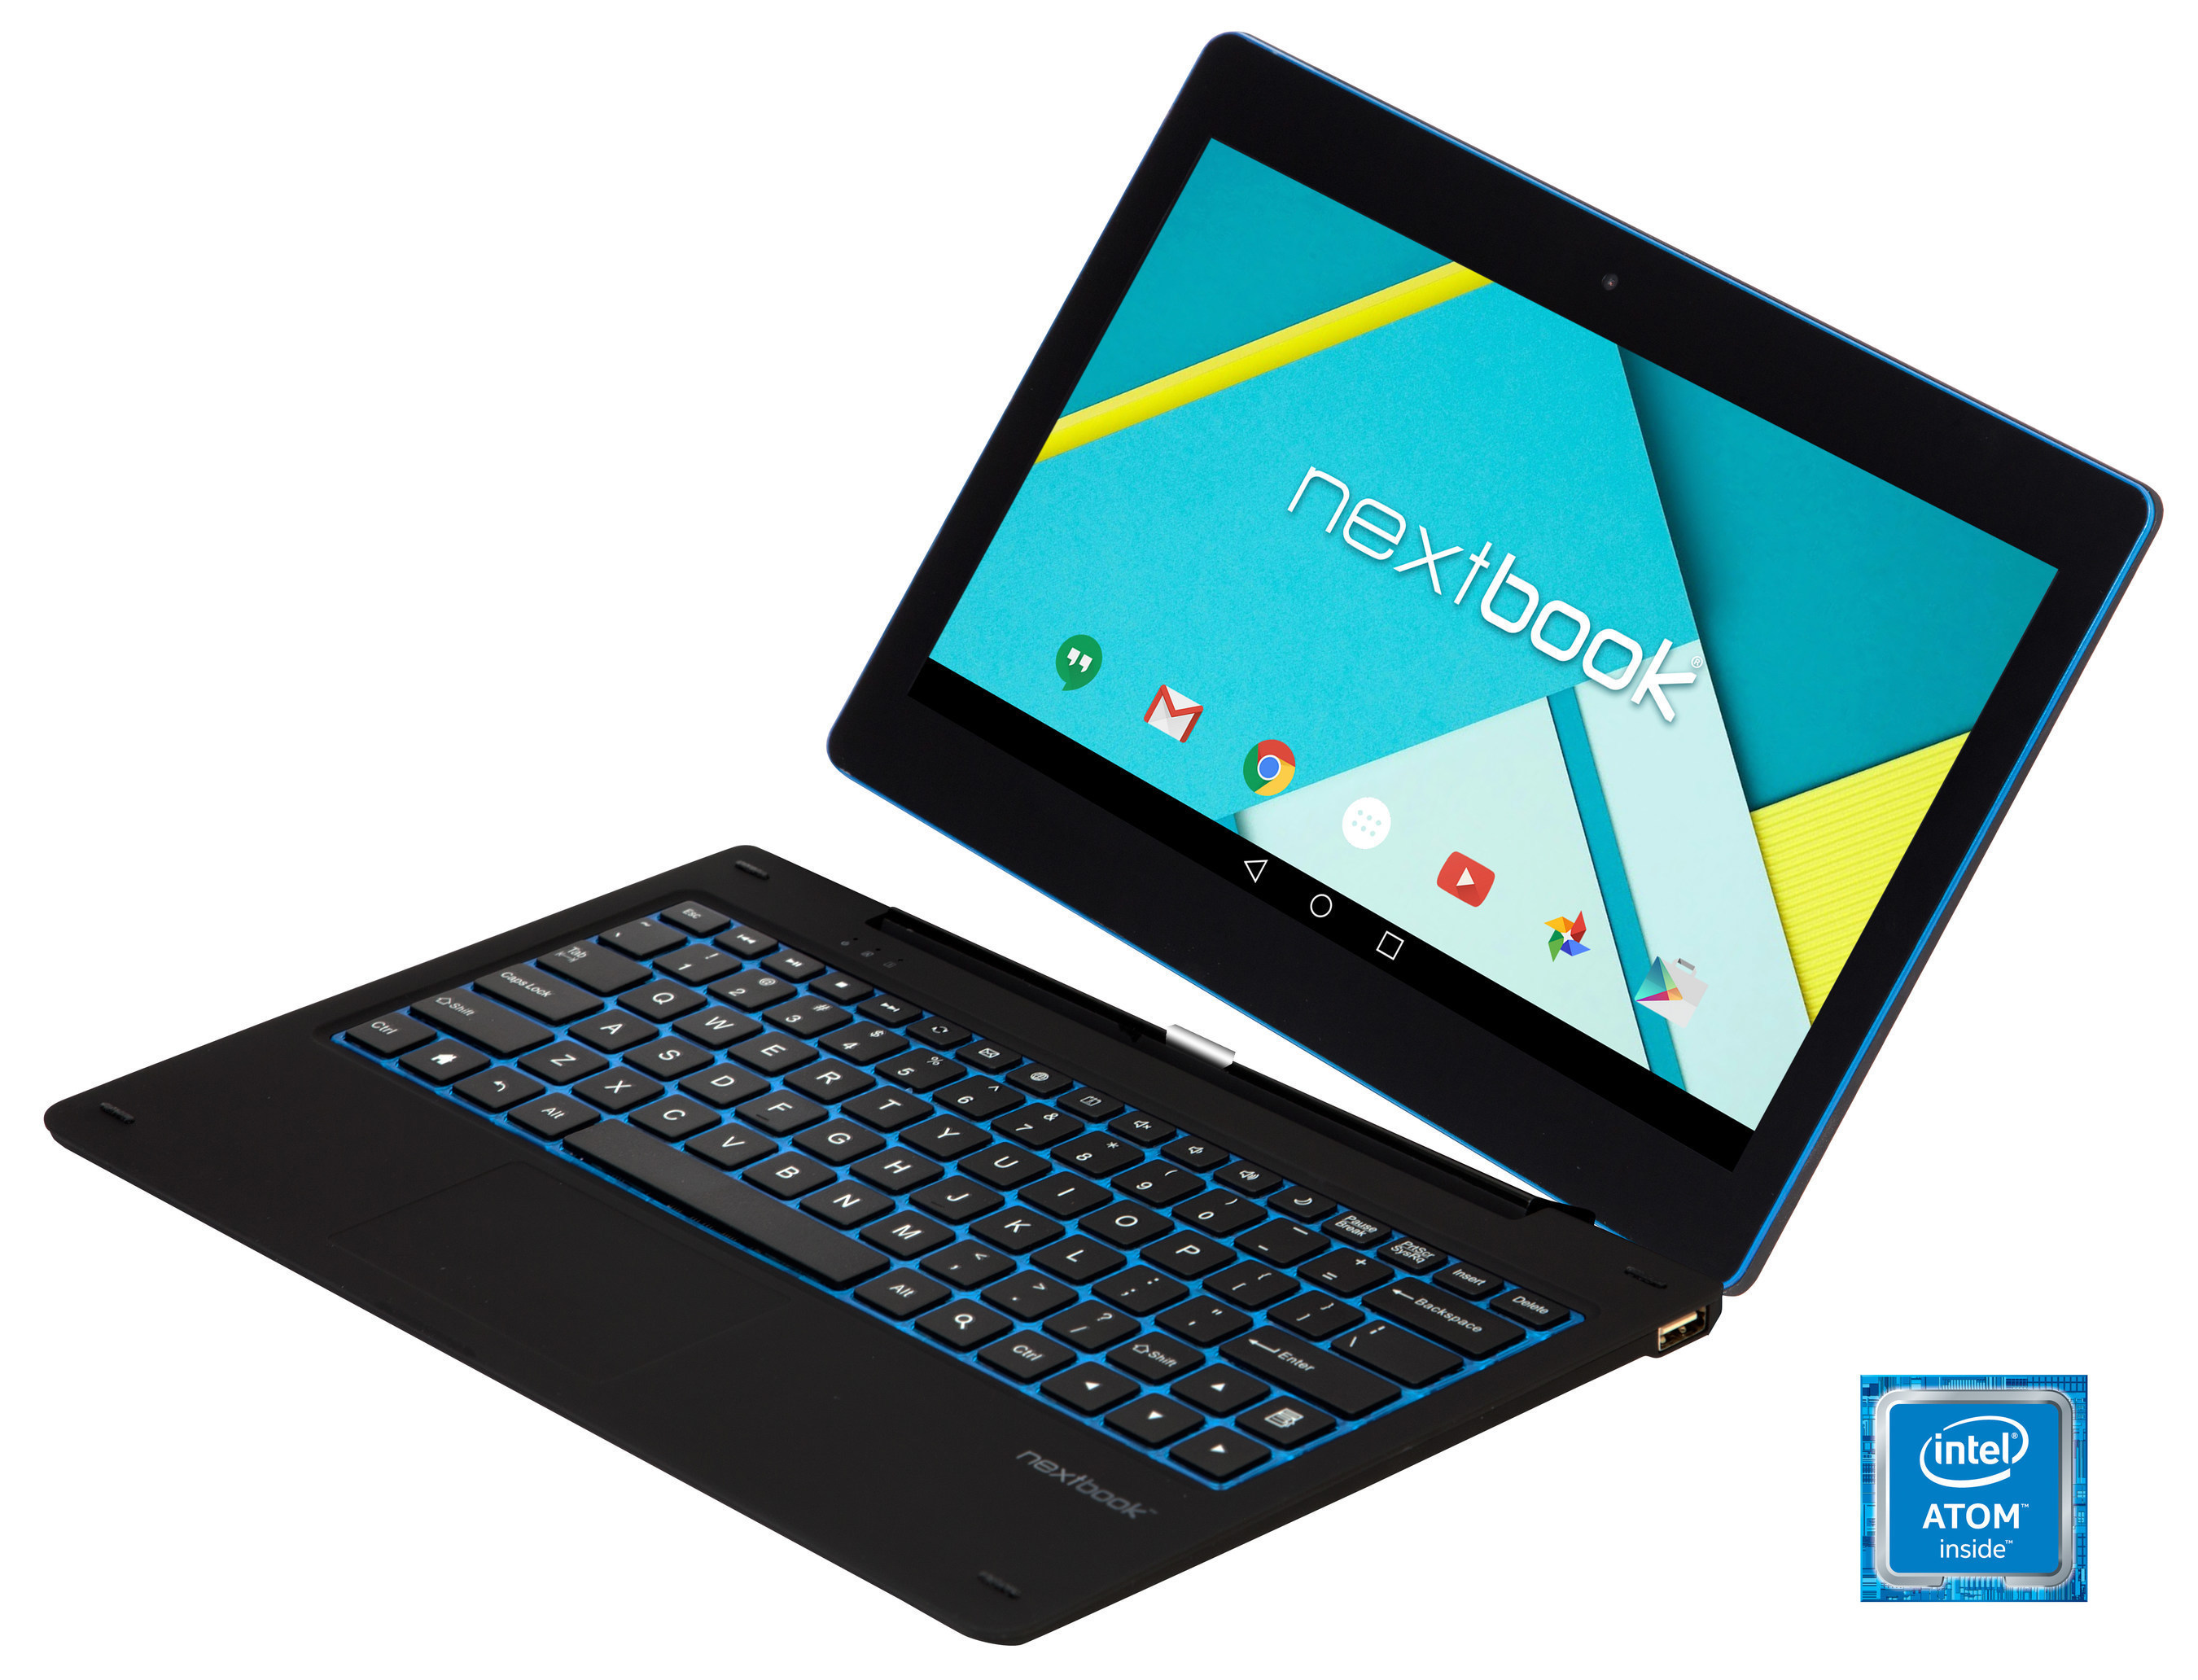 E FUN's Nextbook Ares 11 is the perfect selection for those wanting an Android tablet